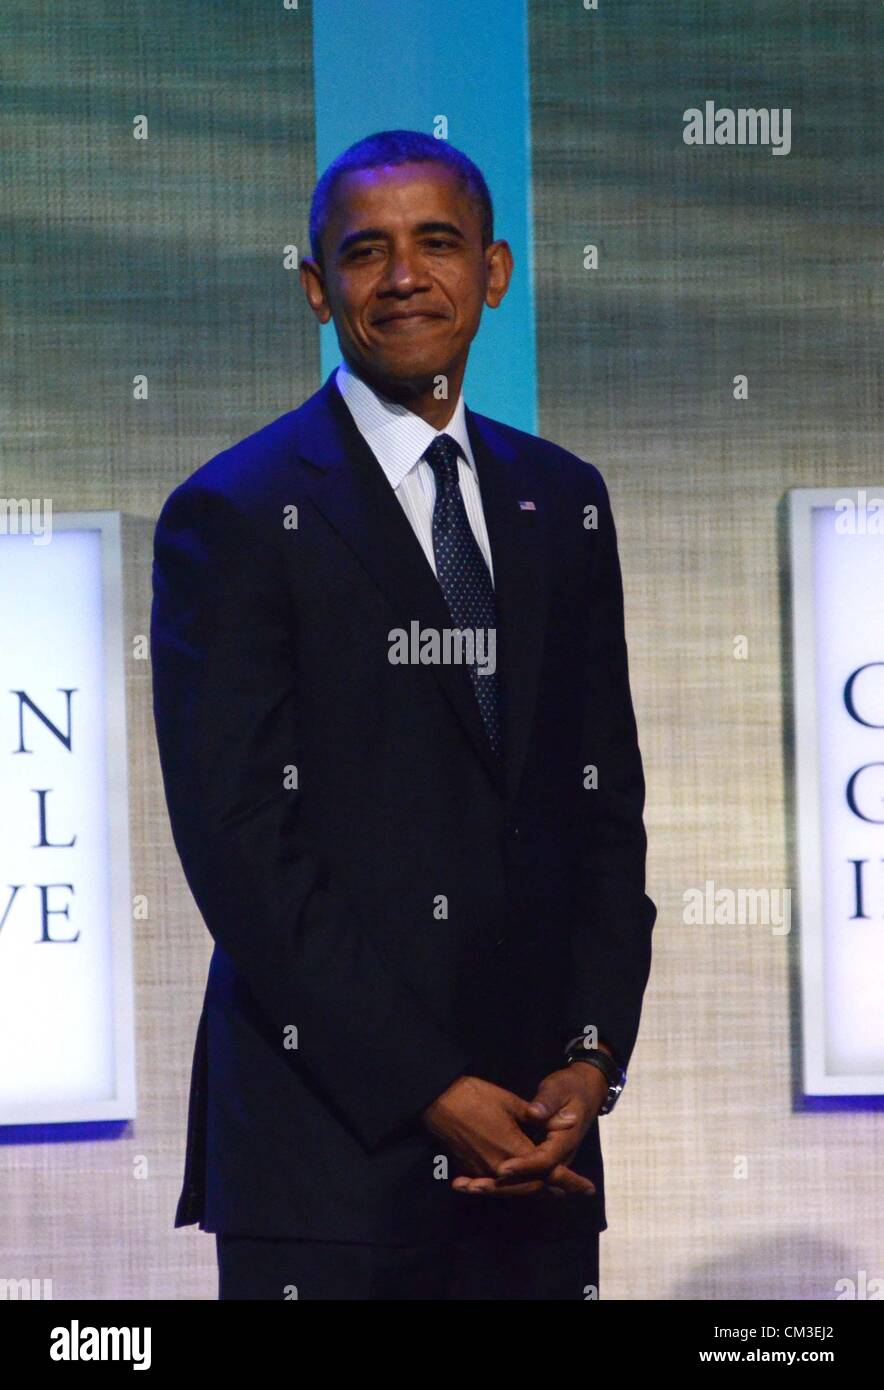 Barack Obama in attendance Clinton Global Initiative Annual Meeting - TUE Sheraton Hotel New York NY September 25 - Stock Image